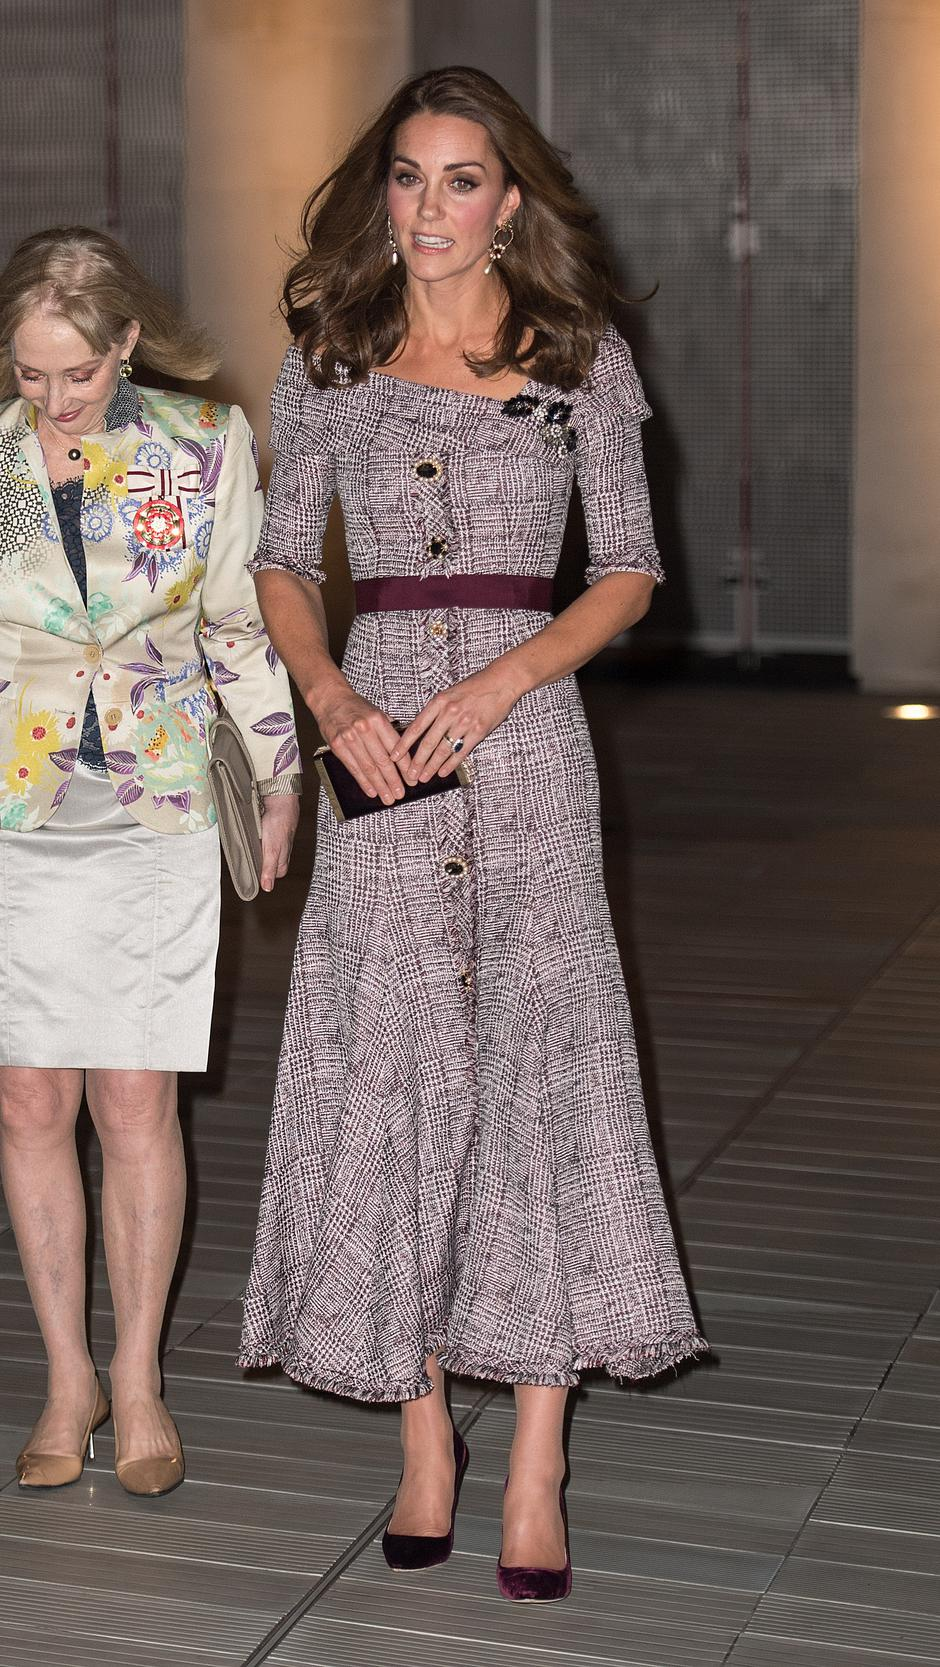 Duchess of Cambridge visit to Victoria and Albert Museum | Autor: Anwar Hussein/Press Association/PIXSELL